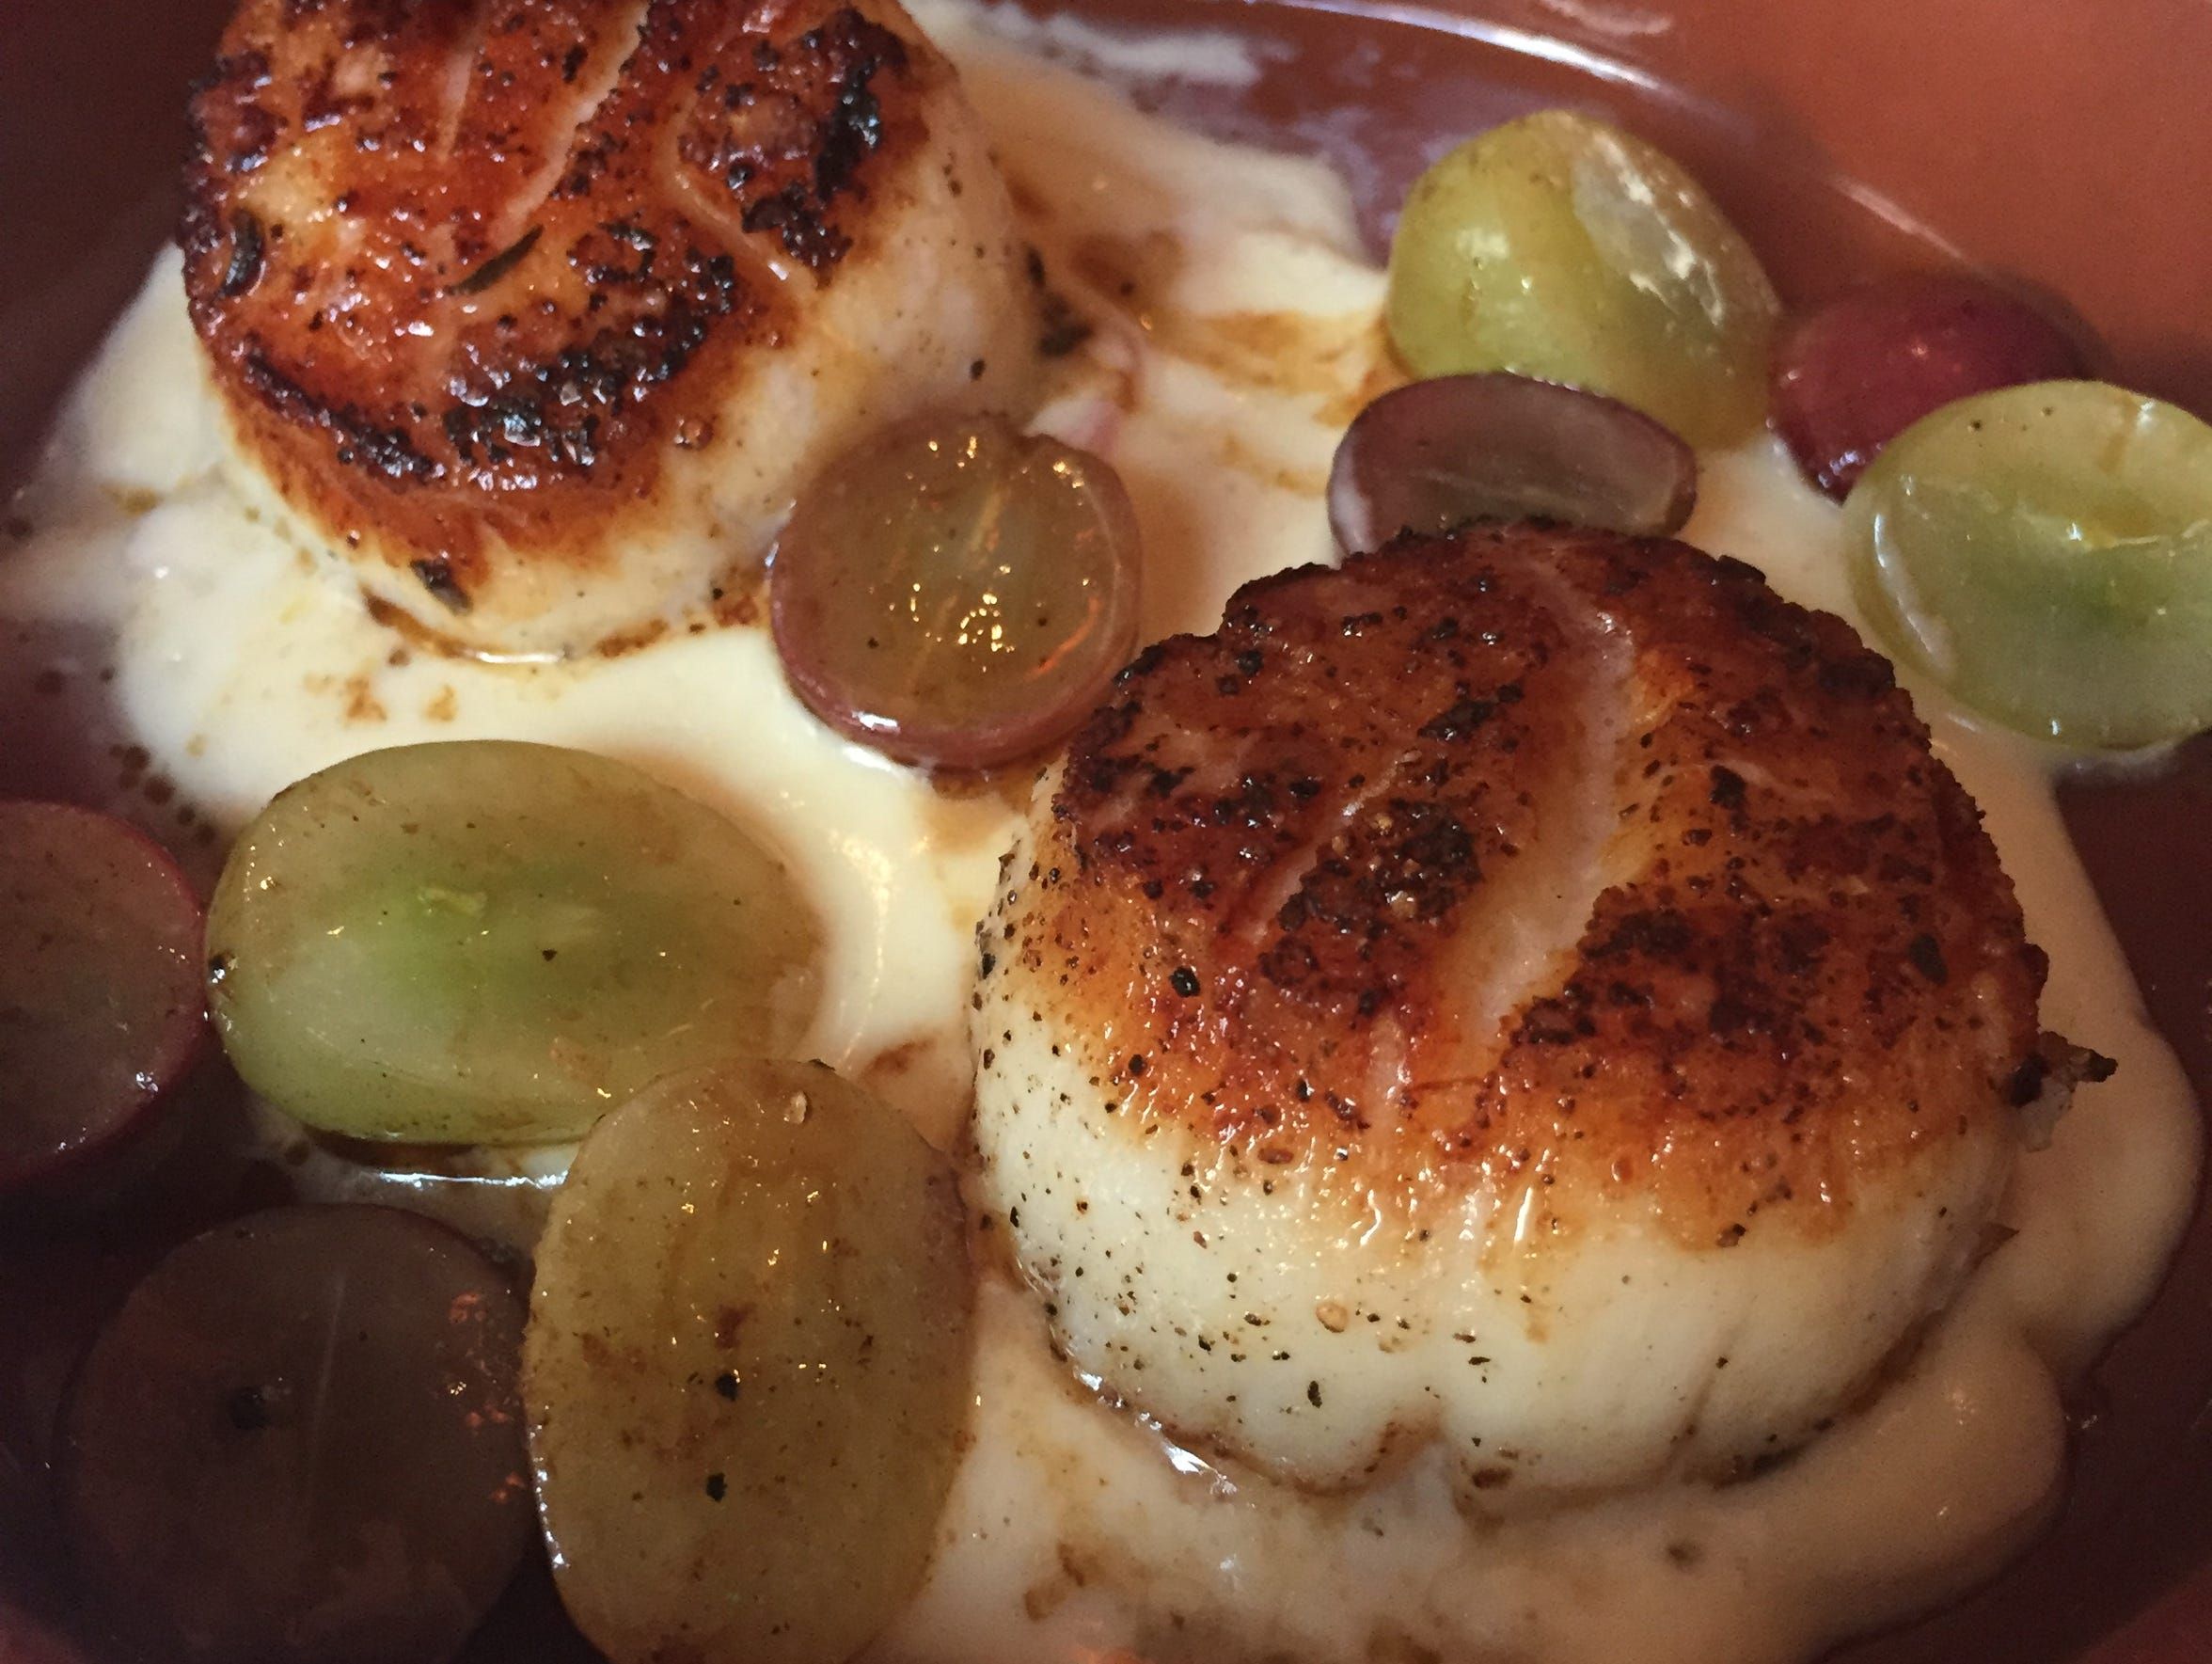 Scallops sauteed with grapes were a Tuesday tapas special